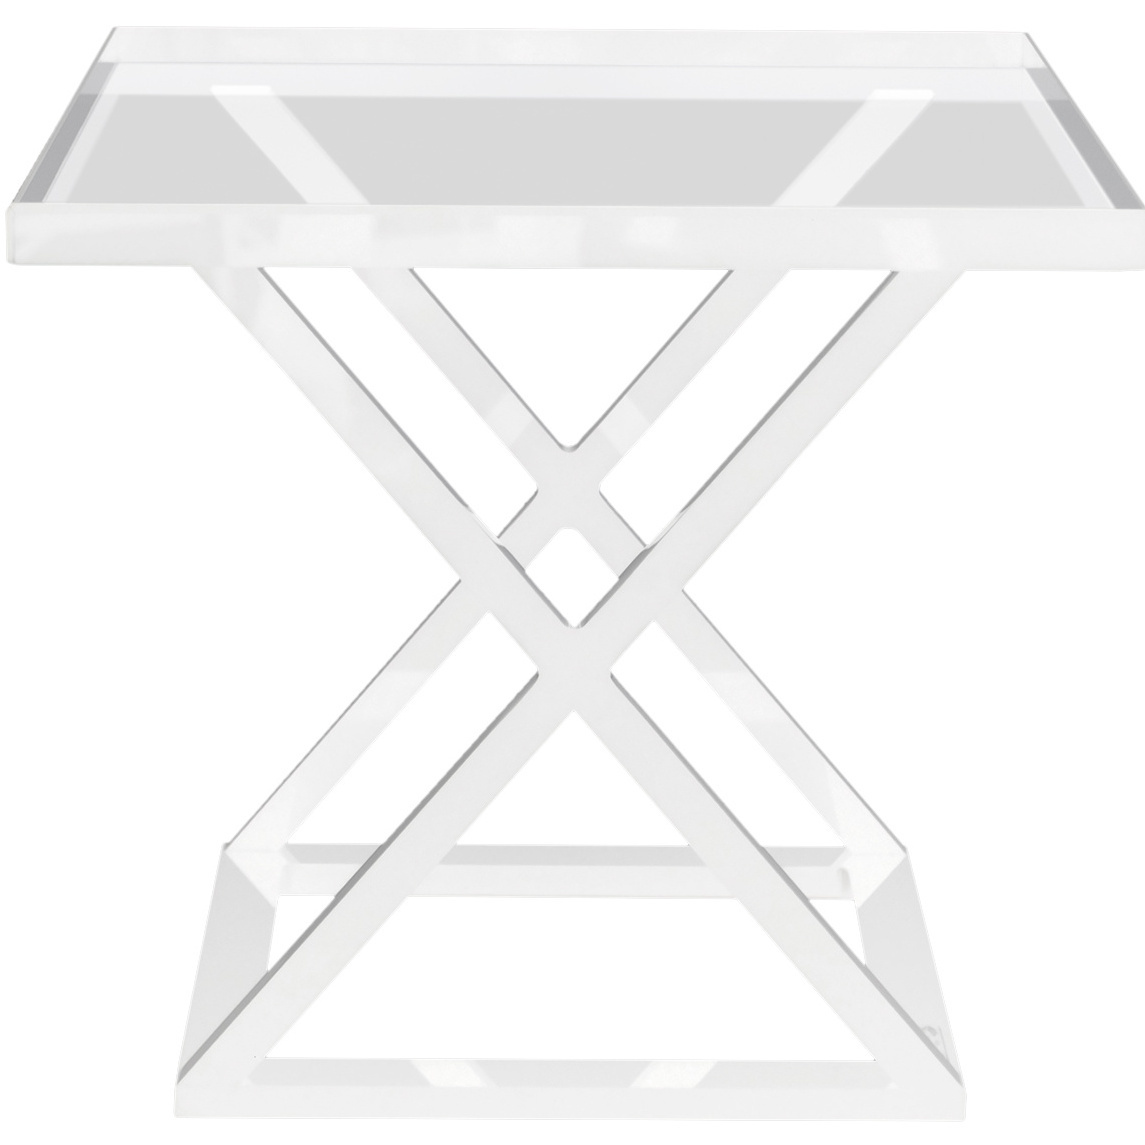 alexandra von furstenberg acrylic accent table original metal furniture legs modern wood and nesting tables steel black end outdoor umbrella stand all glass side solid semi circle